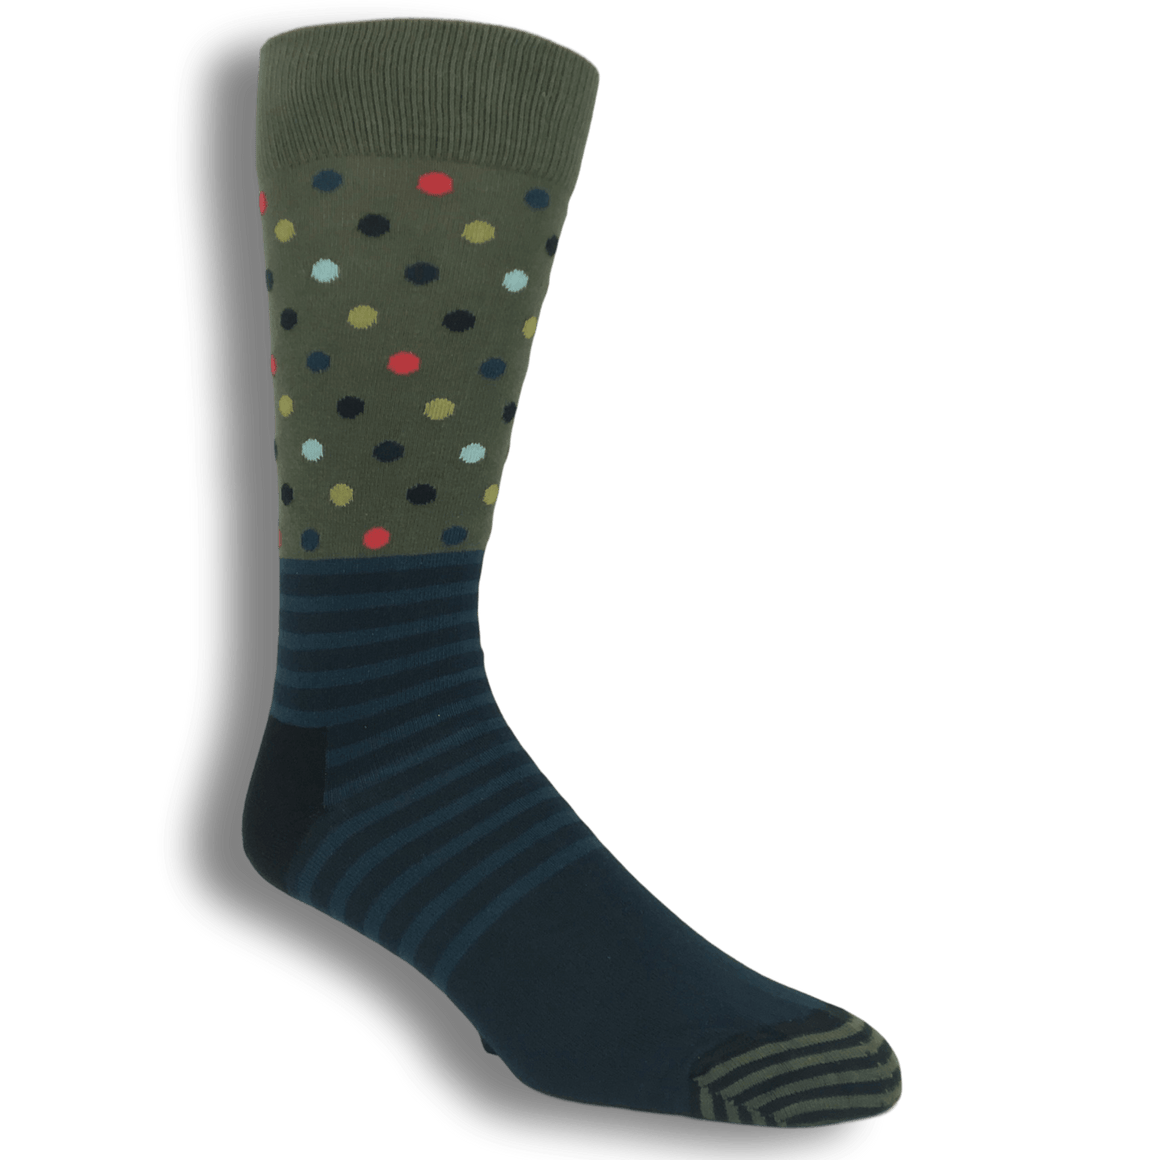 Socks - Green And Blue Stripes & Dots Socks By Happy Socks